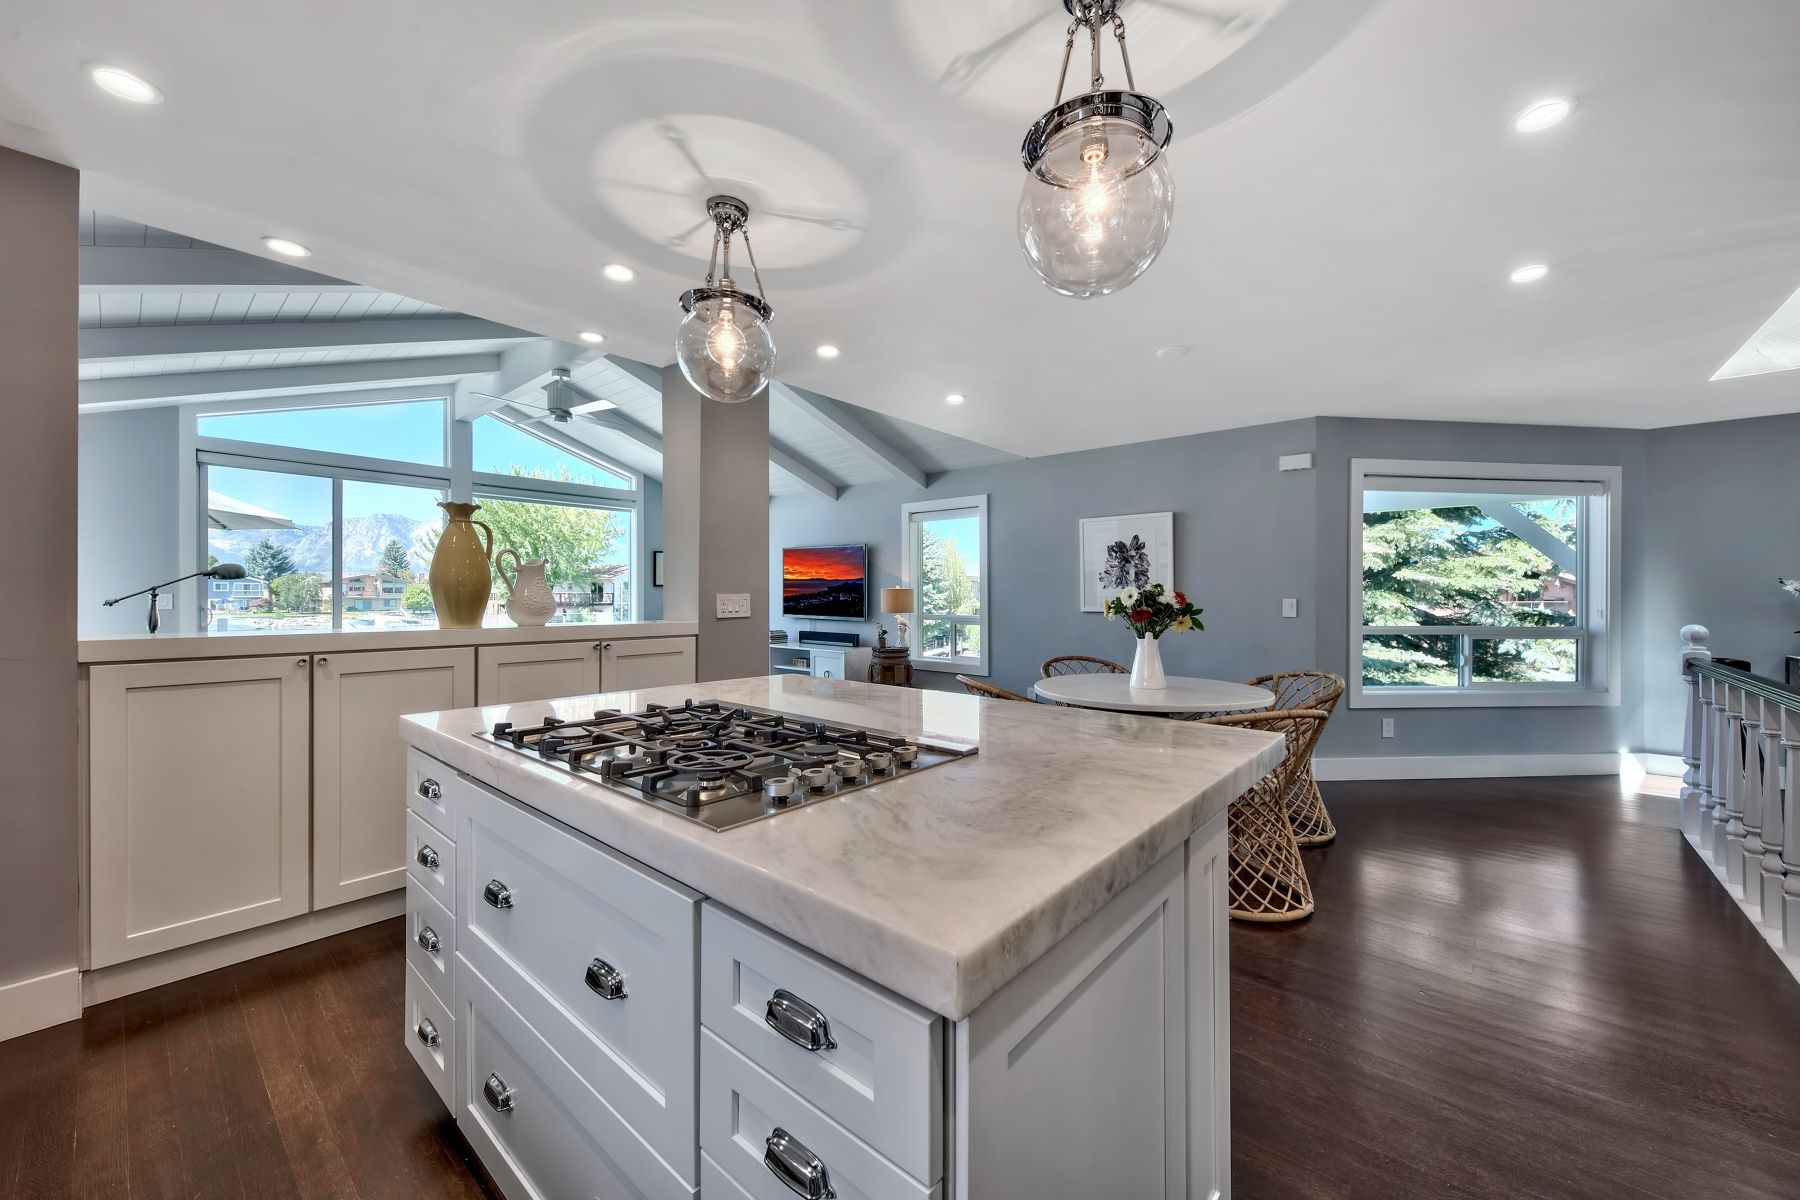 Additional photo for property listing at Completely Remodeled In 2014 490 Carson Court South Lake Tahoe, California 96150 United States